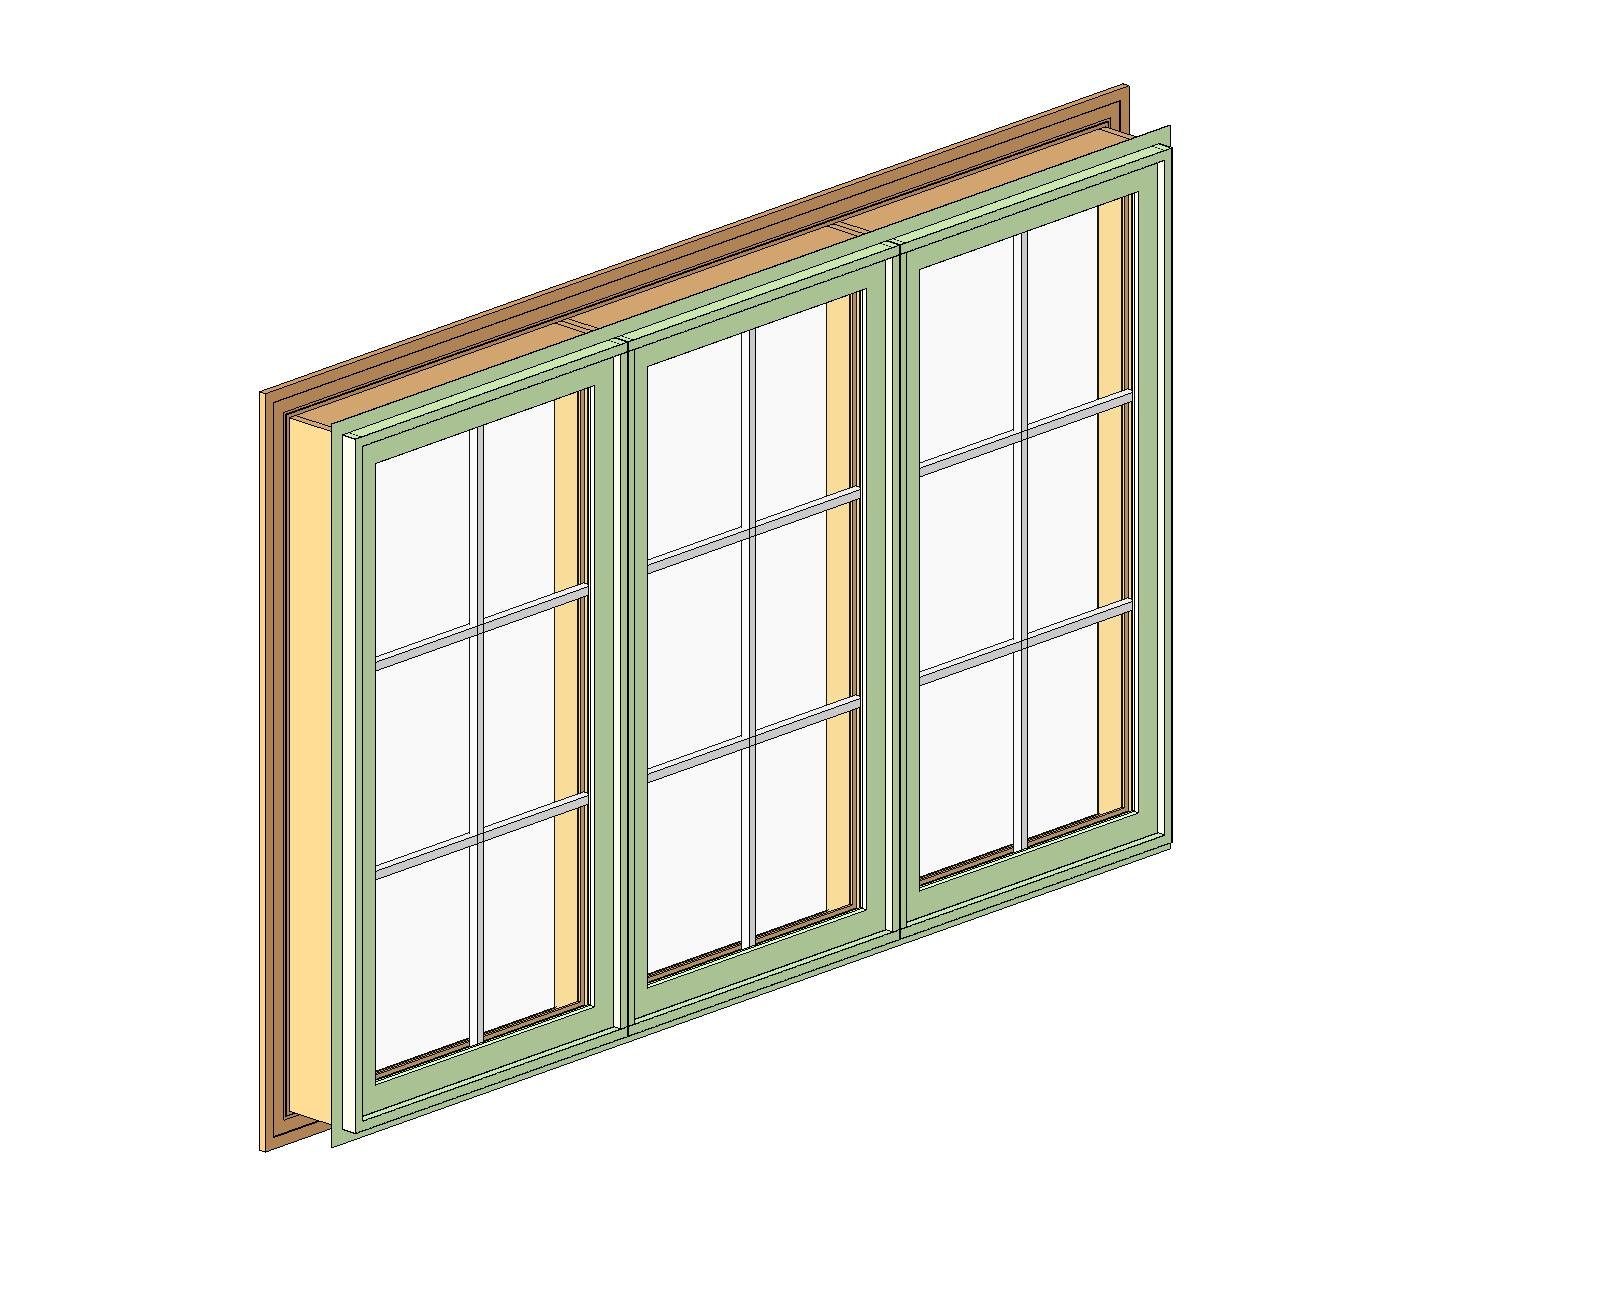 Generic wood windows bim objects families for Window object